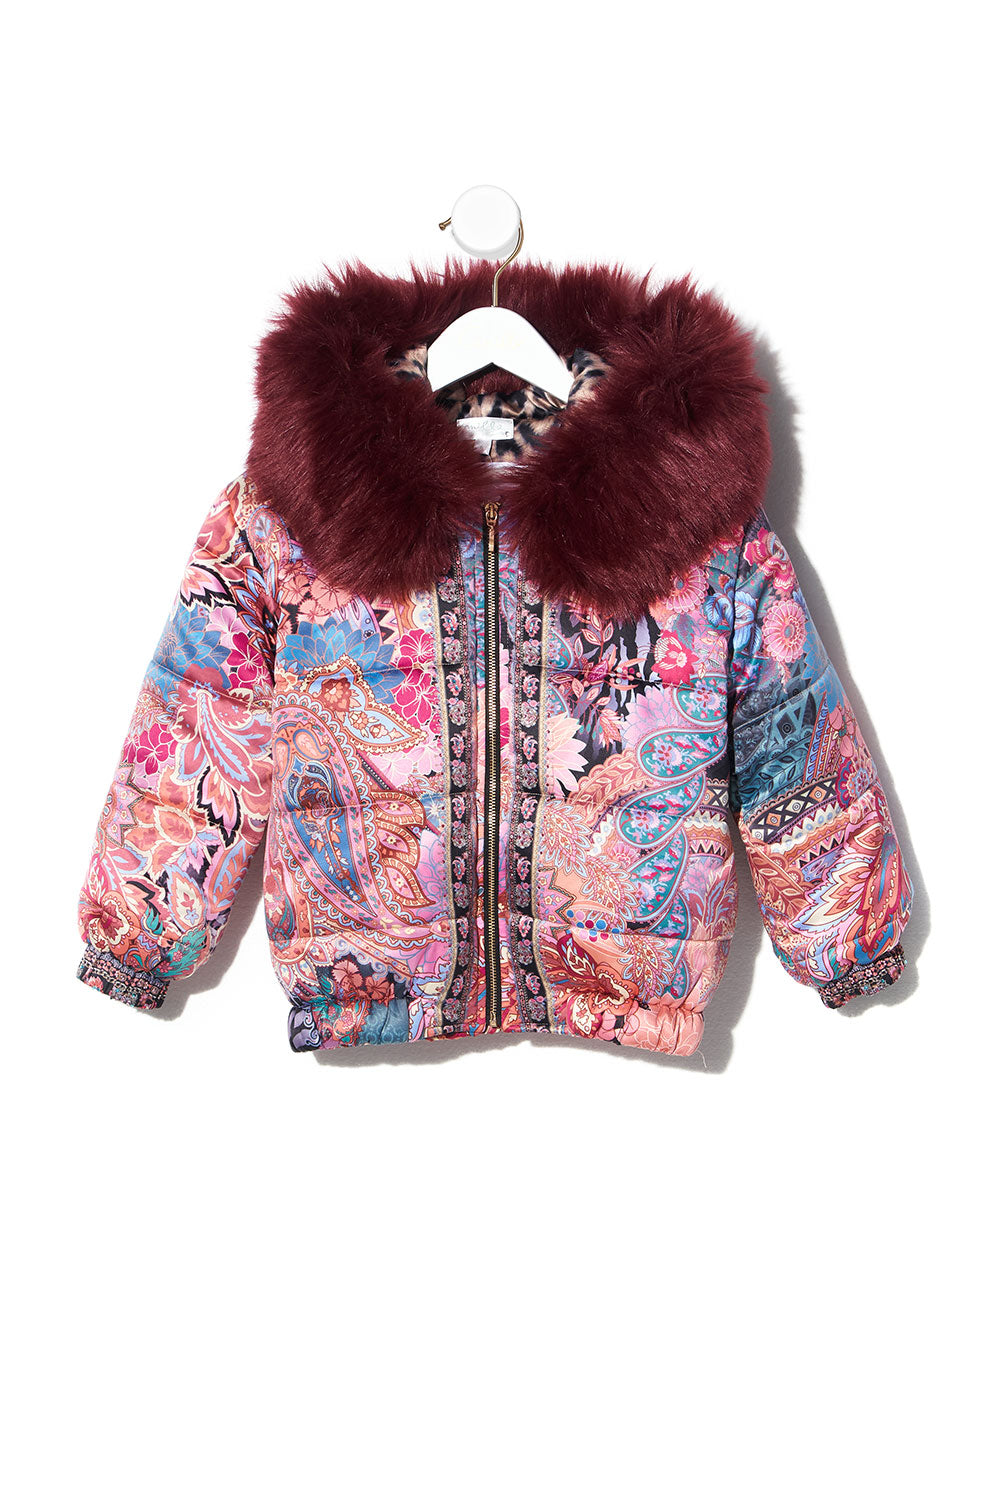 KIDS REVERSIBLE PUFFER WITH REMOVABLE FUR 12-14 MAYFAIR MARY